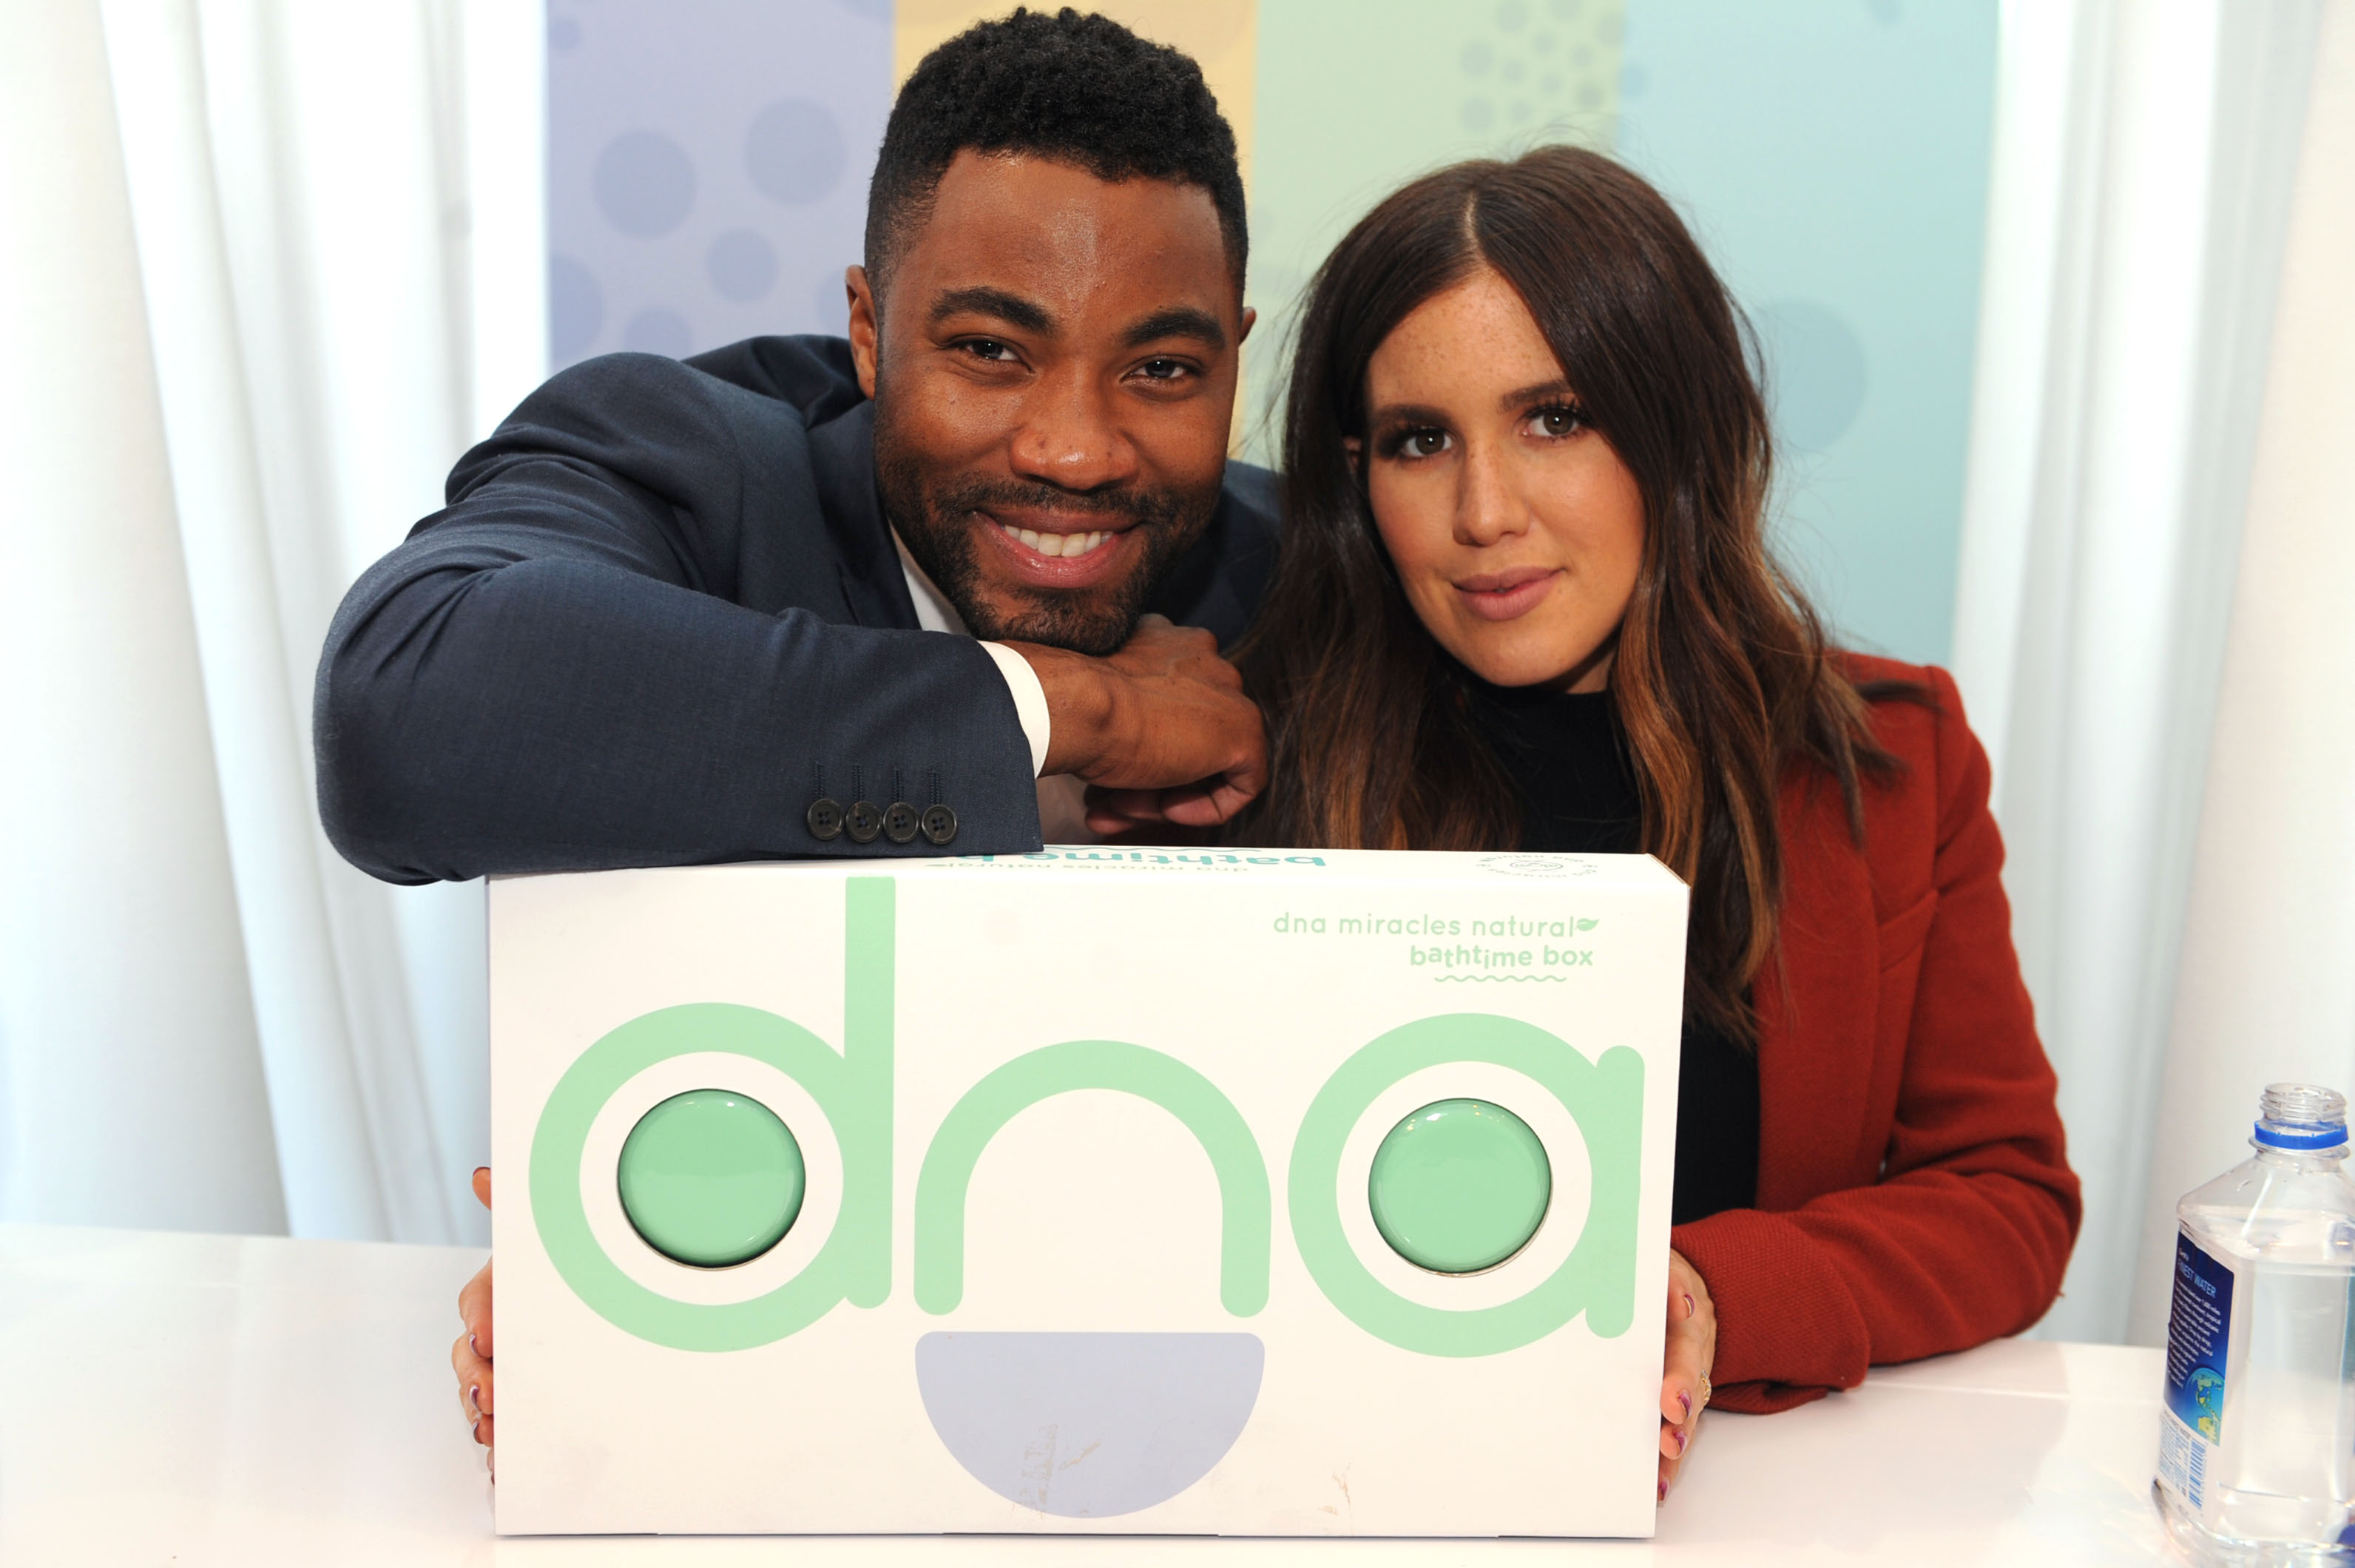 Duane and Amber with DNA box